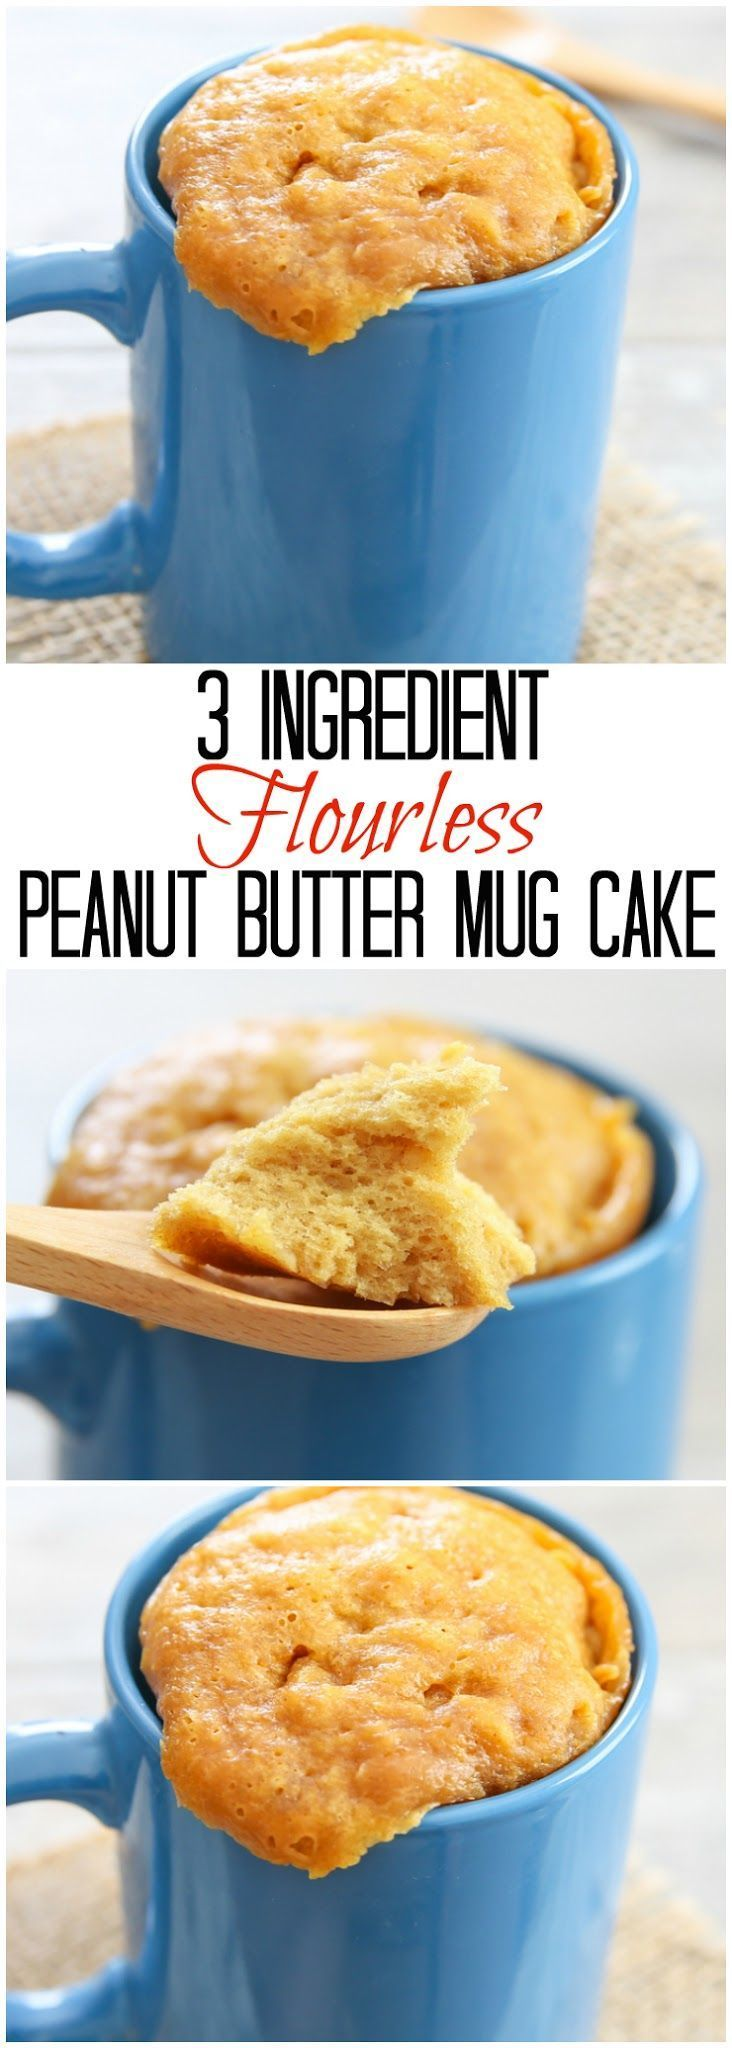 3 Ingredient Flourless Peanut Butter Mug Cake. Easy and ready in 5 minutes #quick #easy #peanutbutter